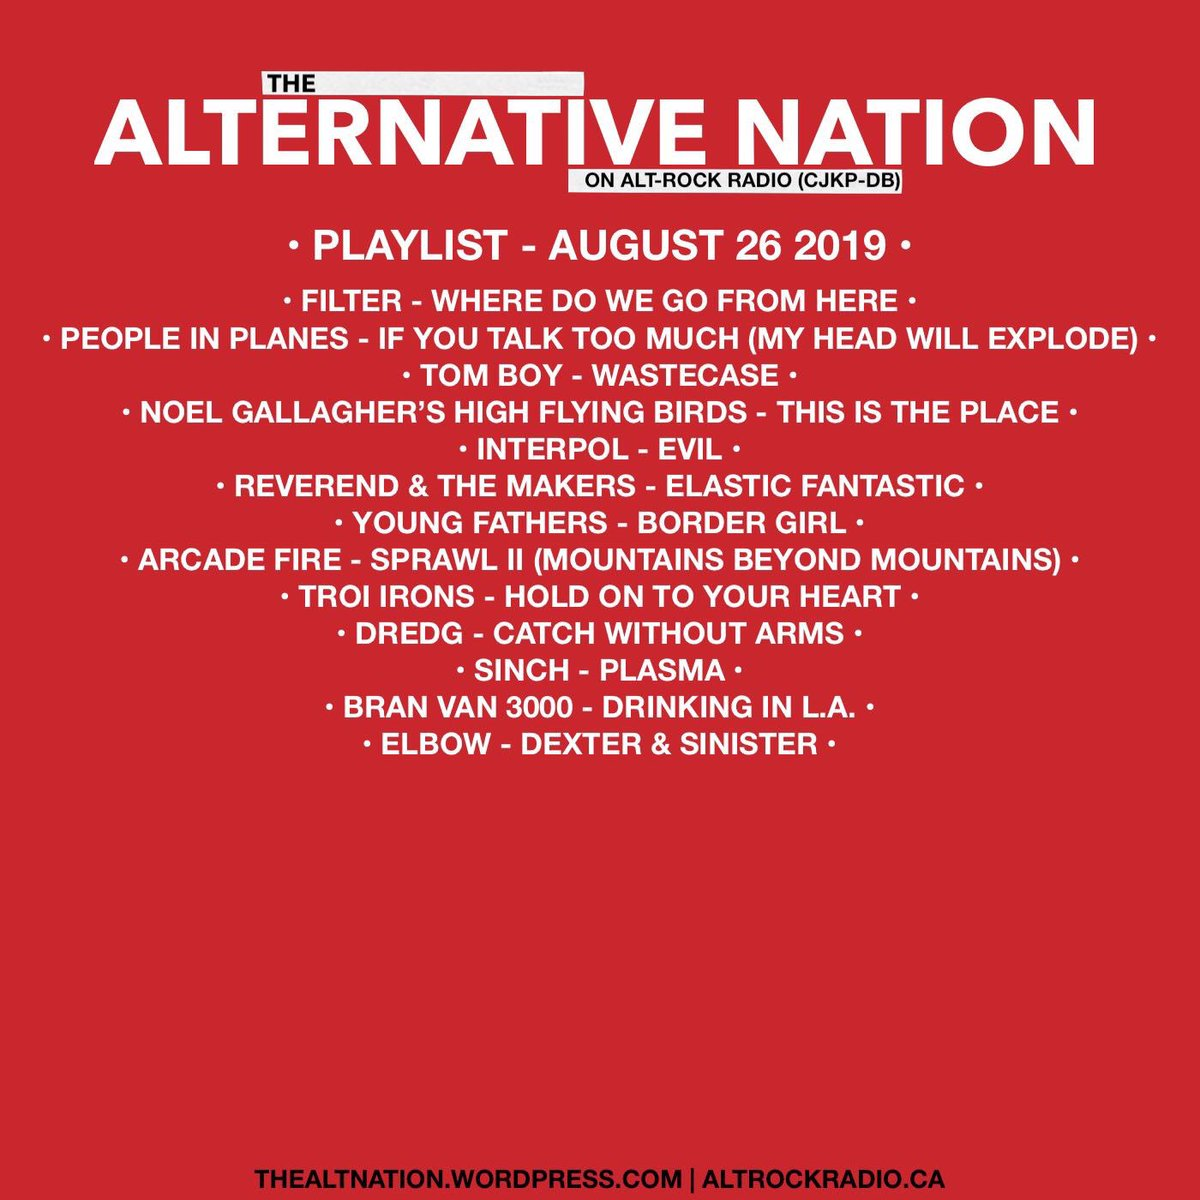 Playlist for the August 26th edition of The Alternative Nation Radio Show on @altrockradioca #music #Radio #yourFMalternative #alternative #indie #altrock #rock #internetradio #Playlist #Canada #canadarockspic.twitter.com/5lwKjdqSfh